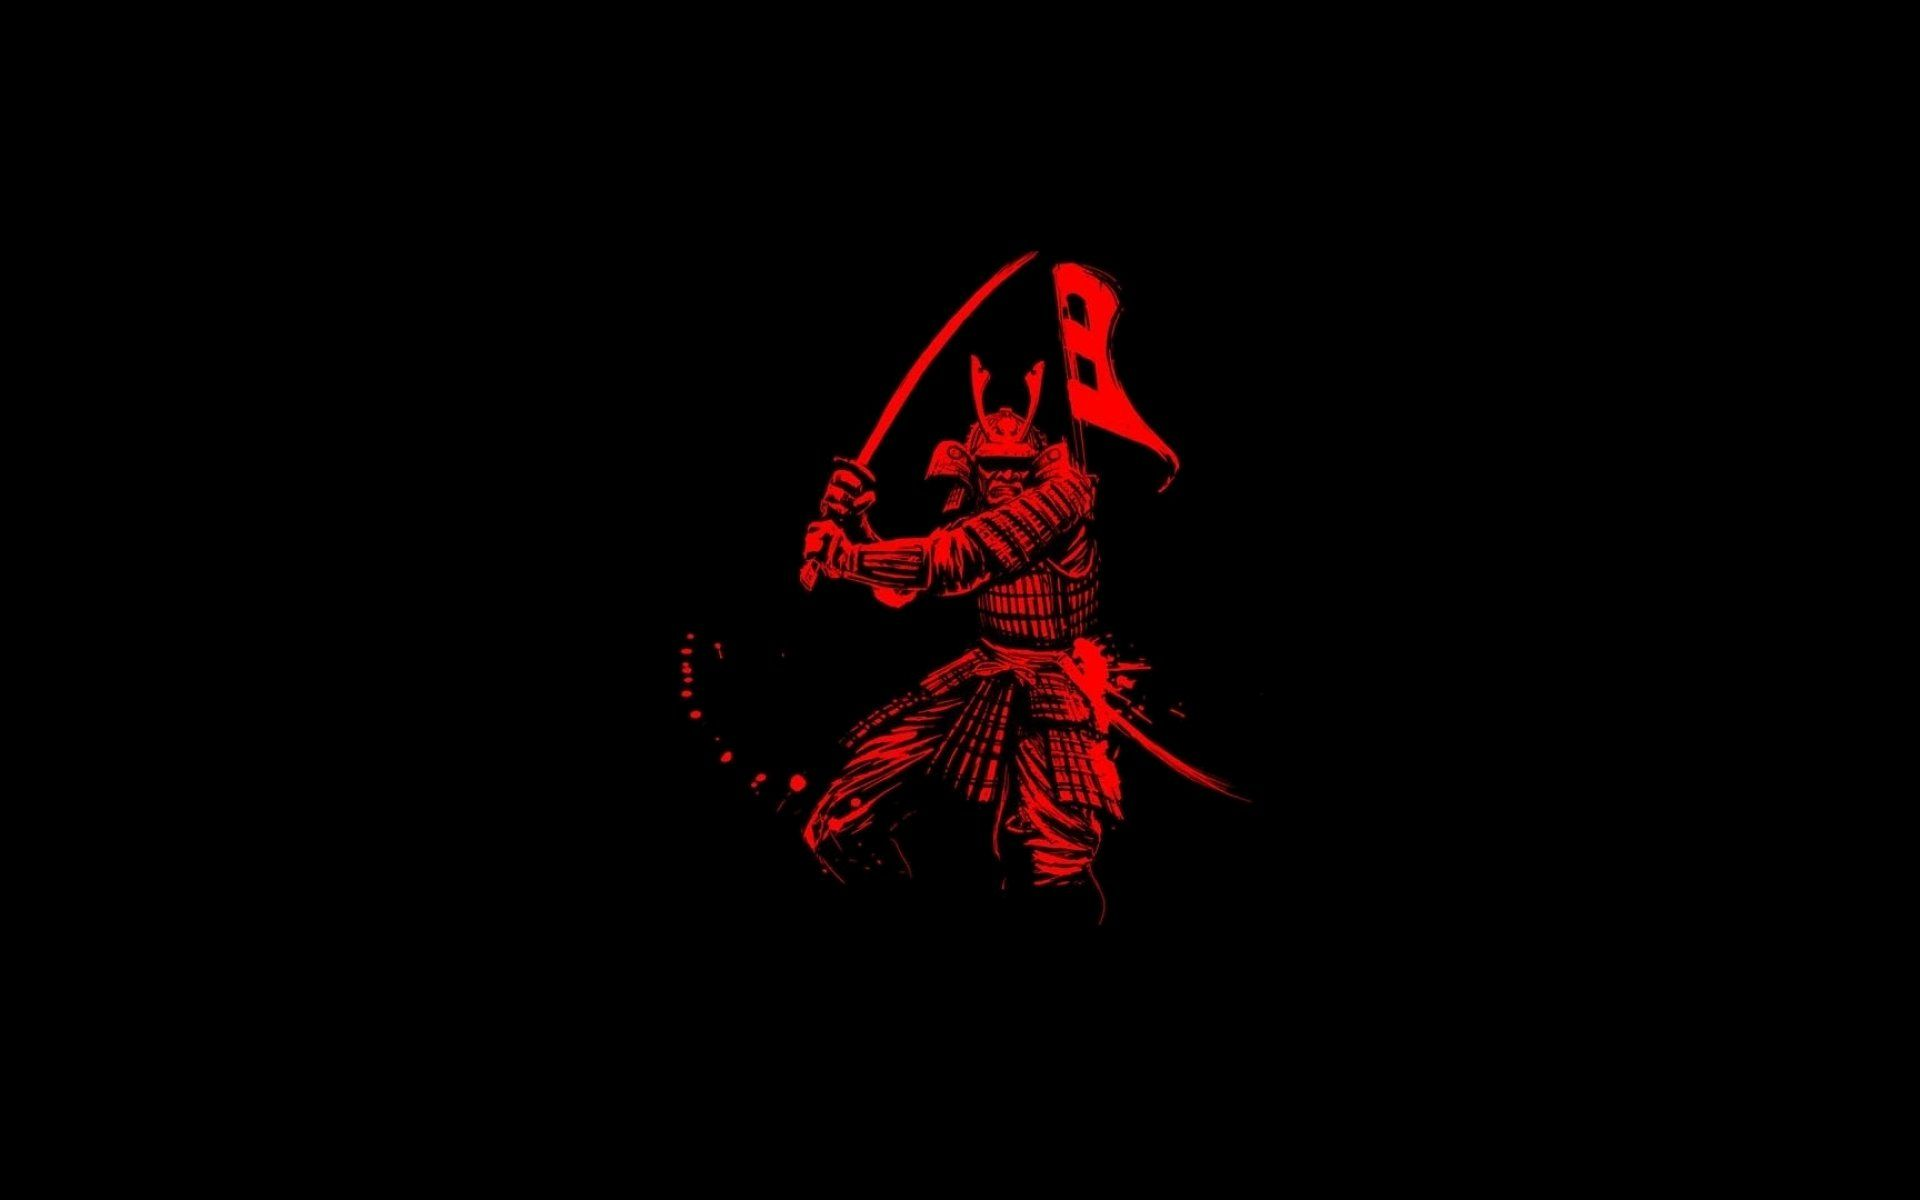 Asian Warrior Art Wallpapers Top Free Asian Warrior Art